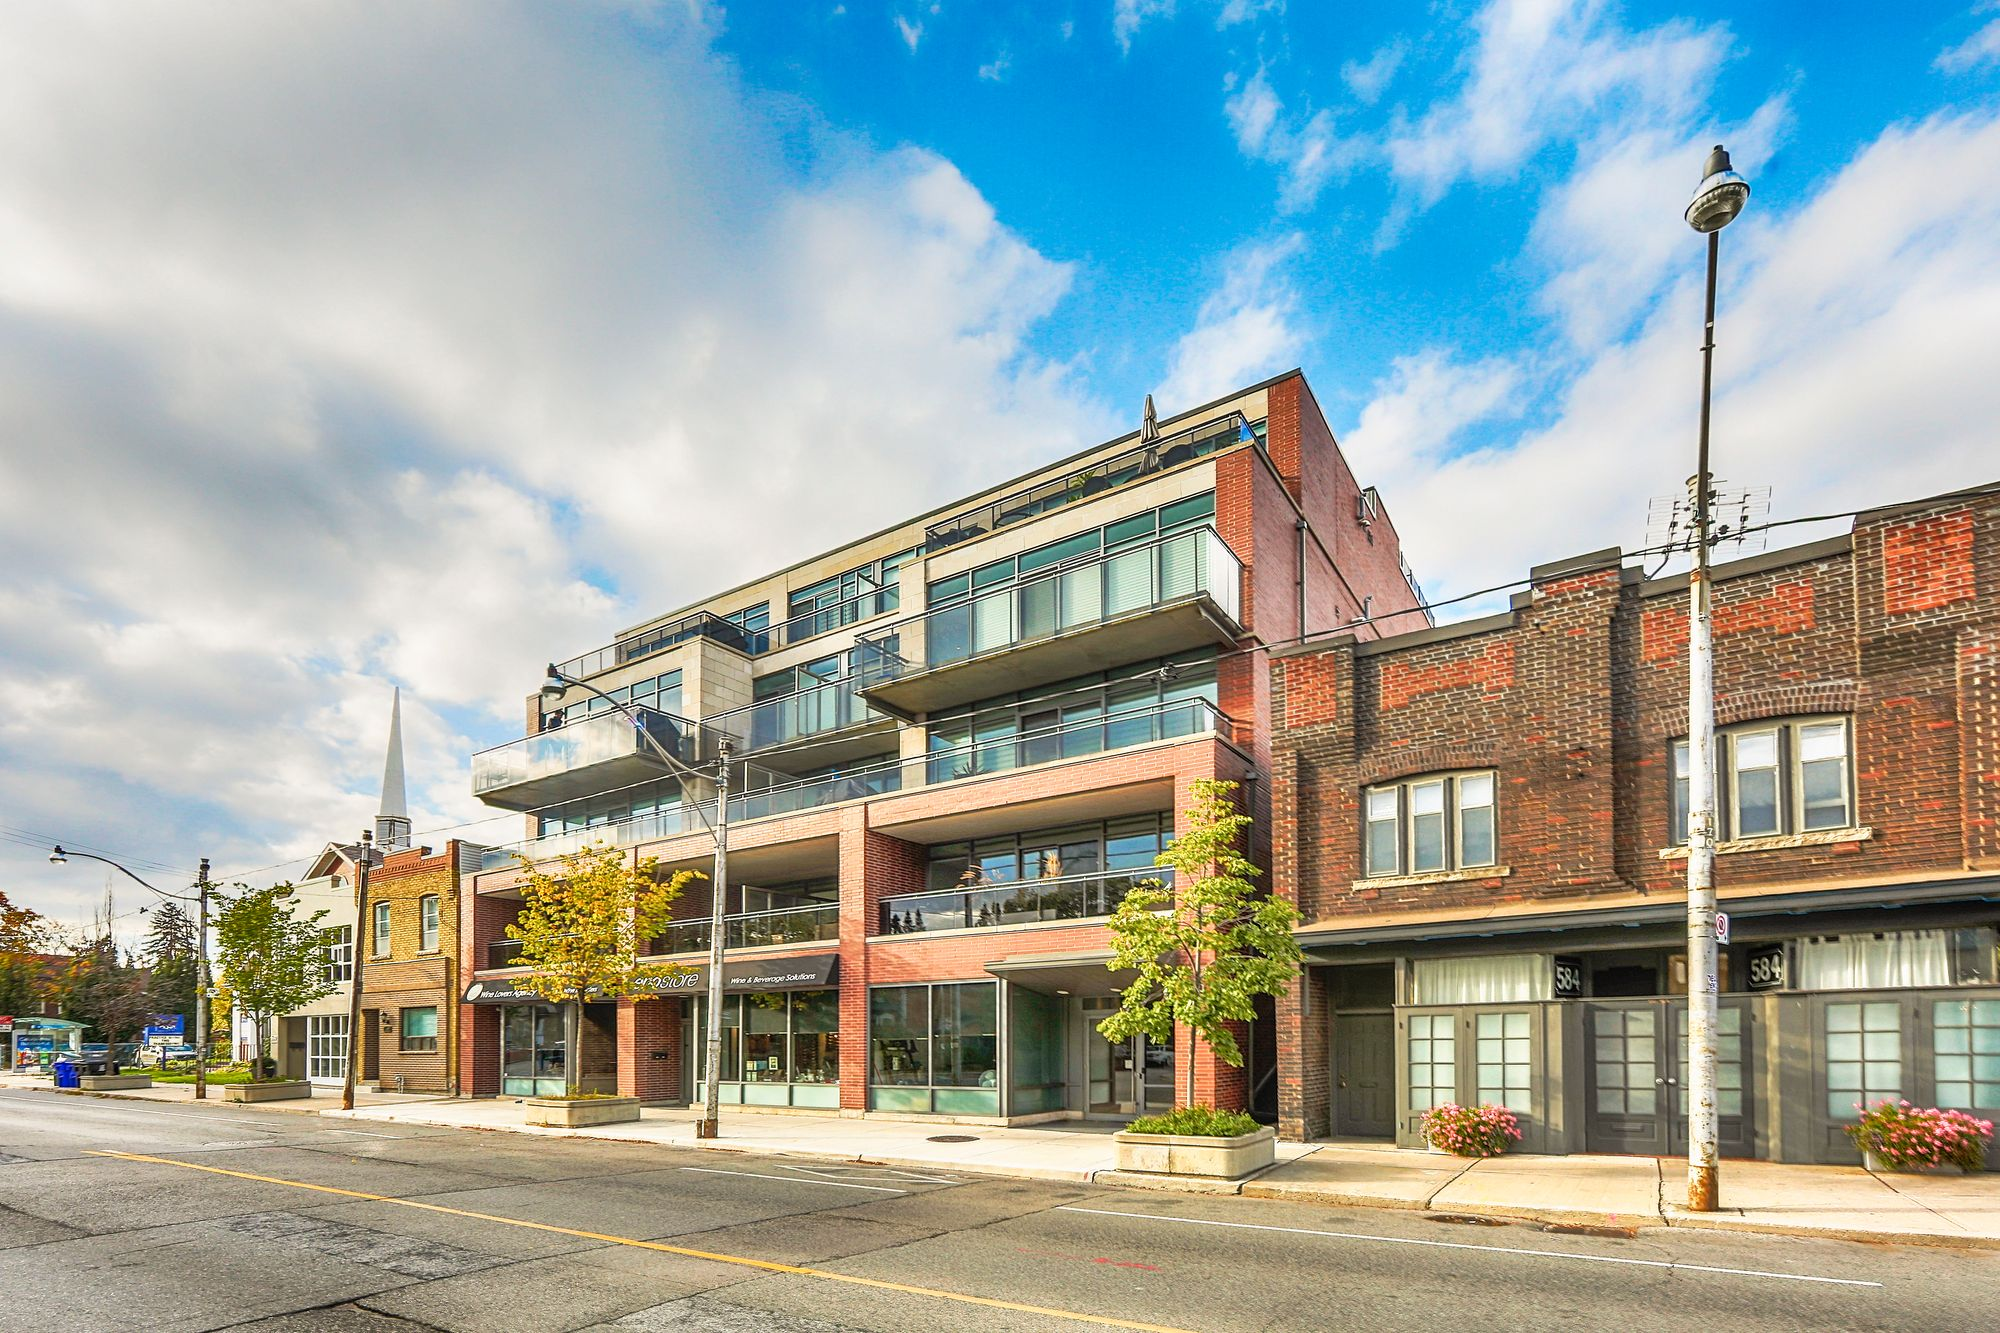 588 Annette St. This loft at Volta Lofts is located in  West End, Toronto - image #1 of 4 by Strata.ca